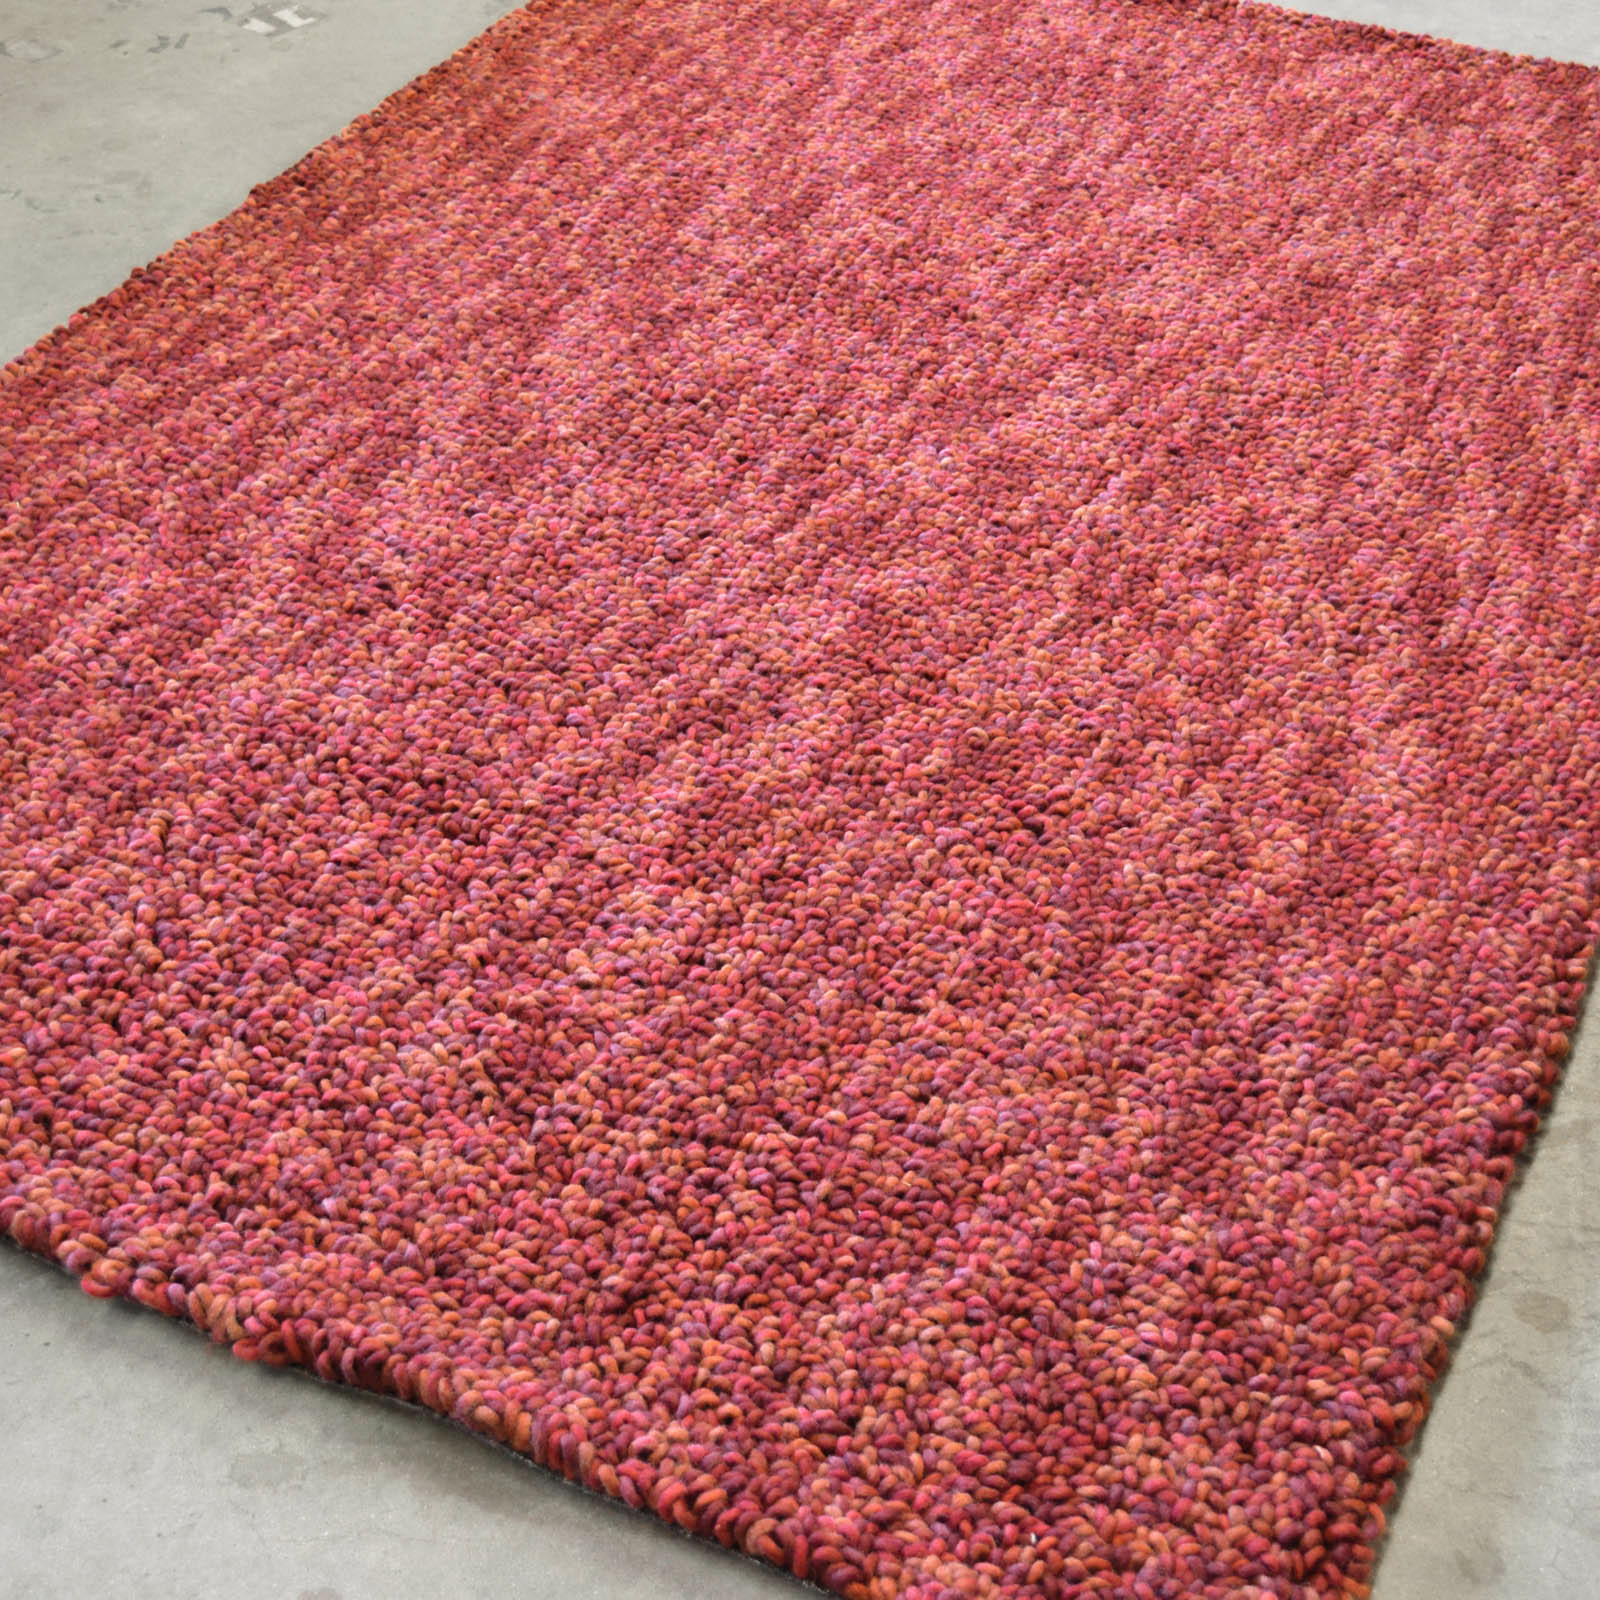 Metal Rugs 18900 Red by Brink and Campman